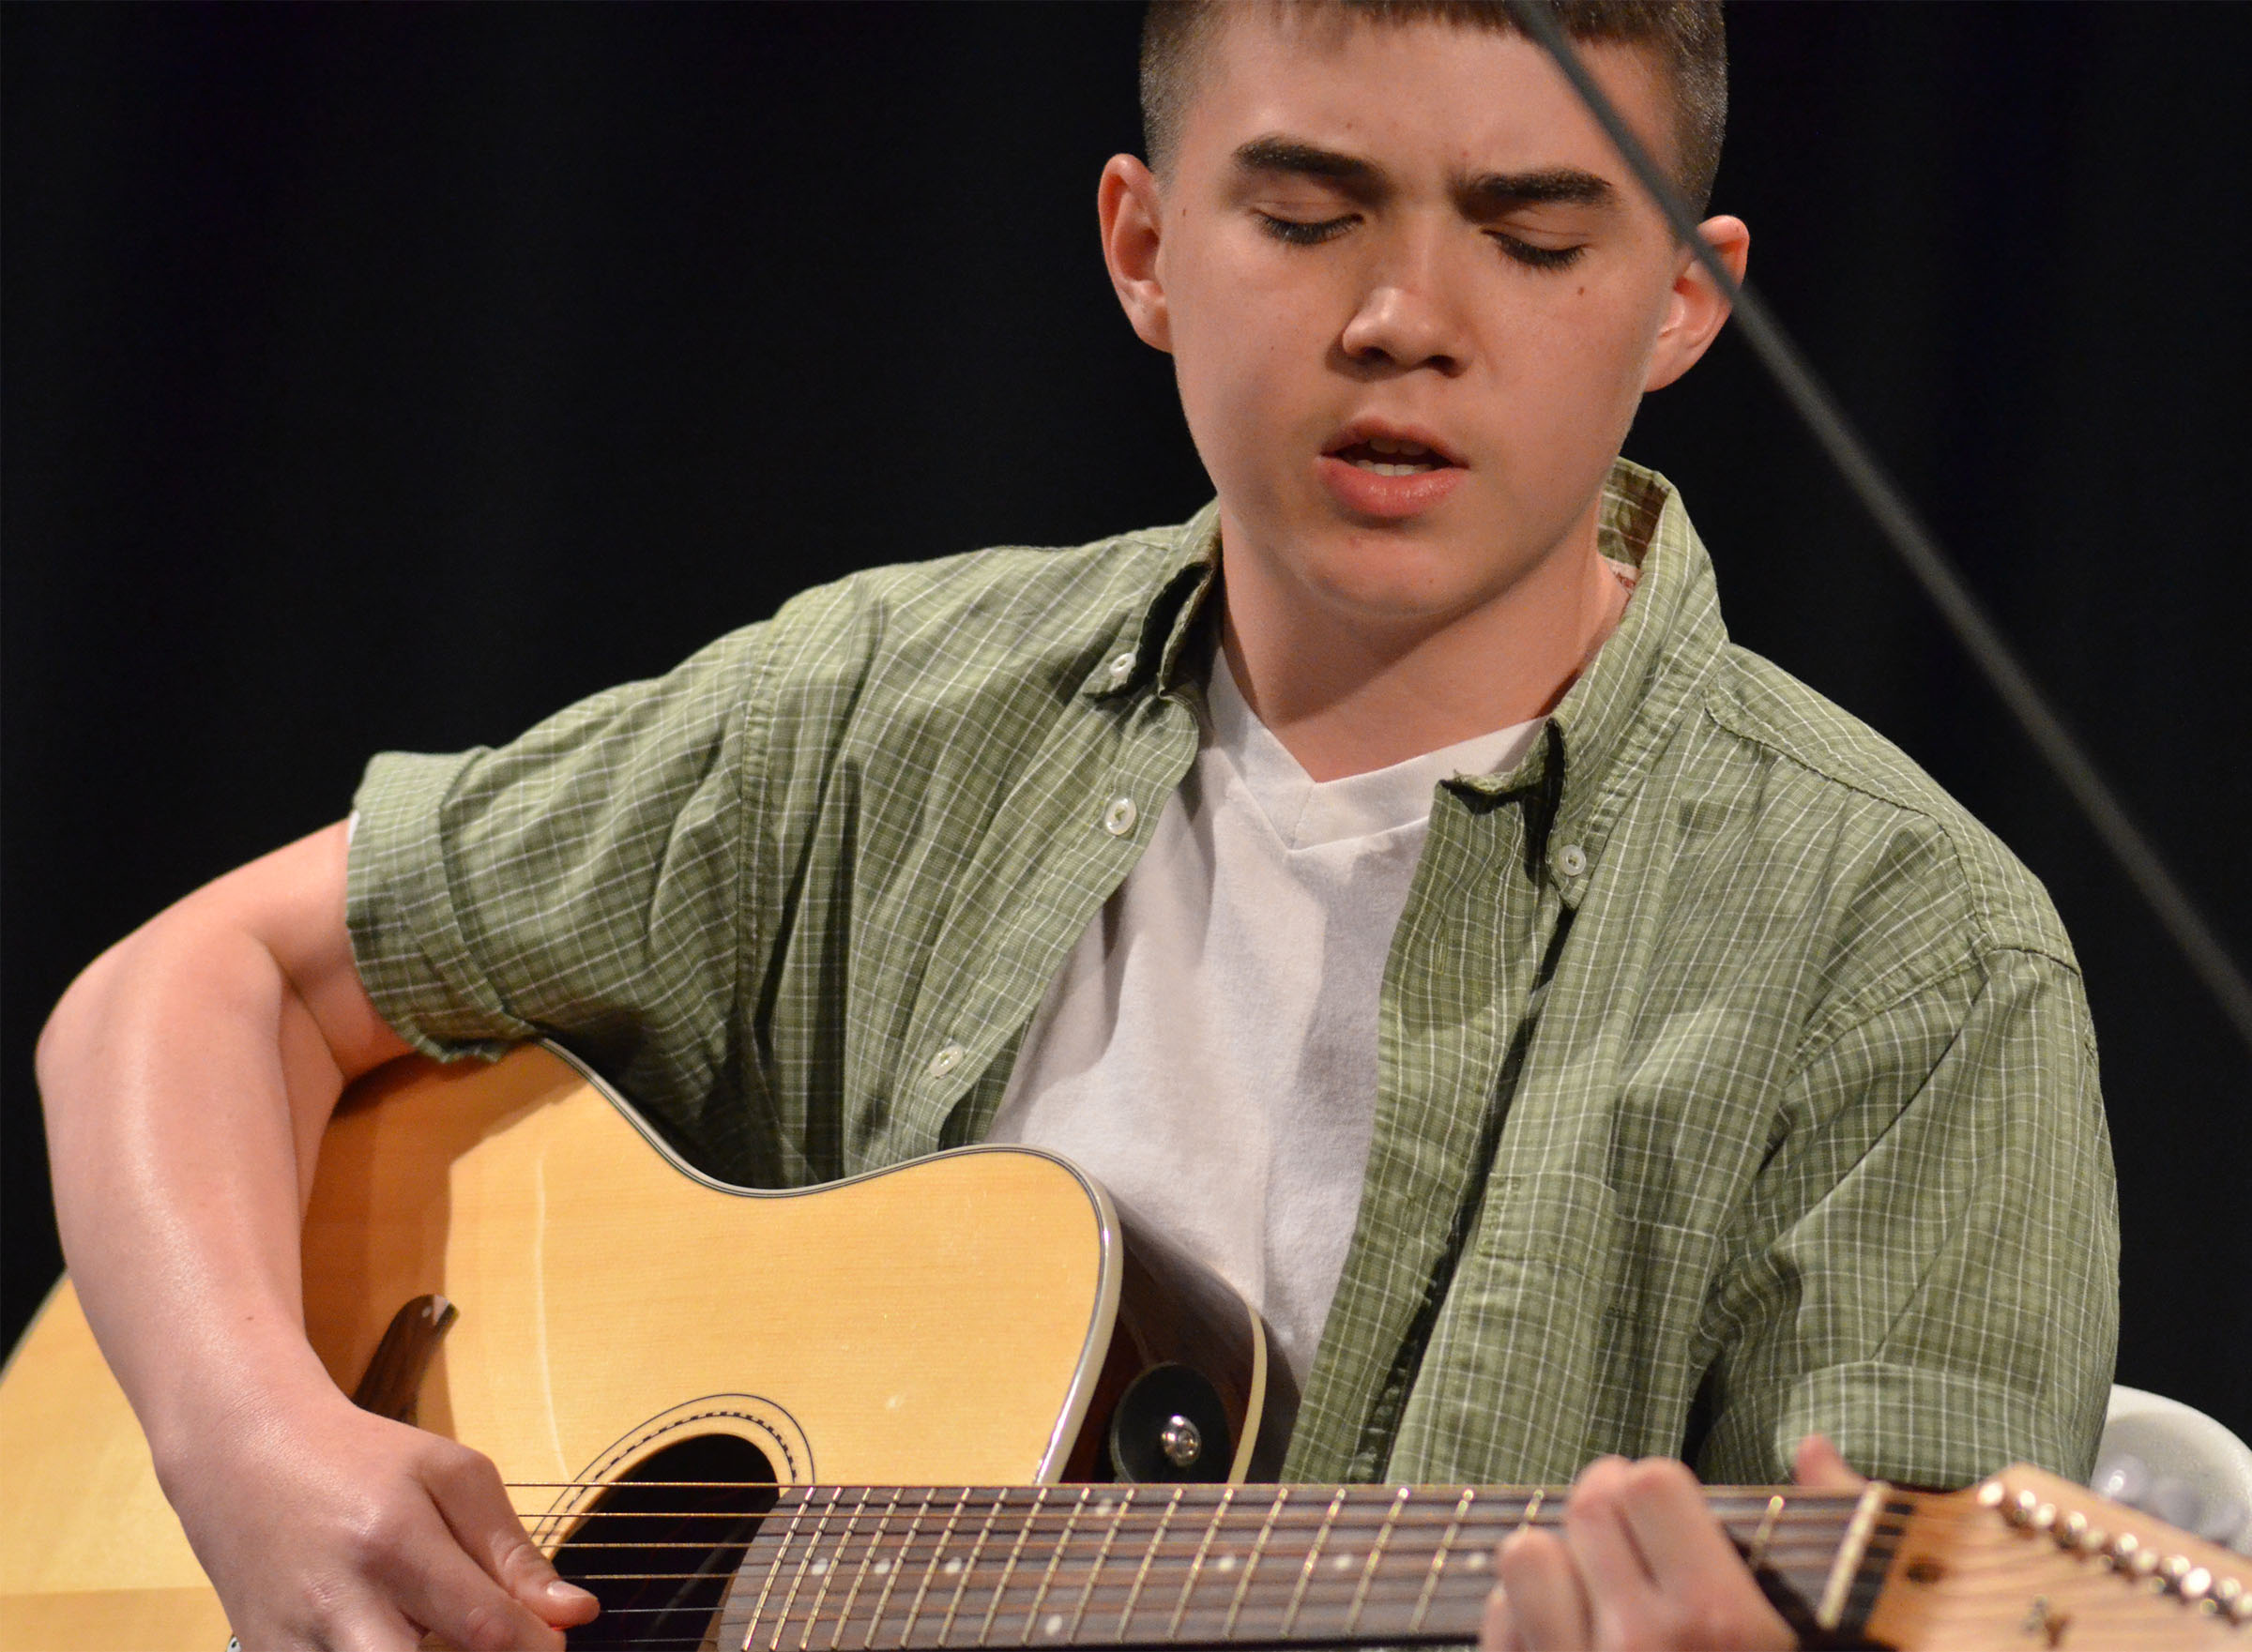 CHS freshman Cole Kidwell plays guitar and sings.